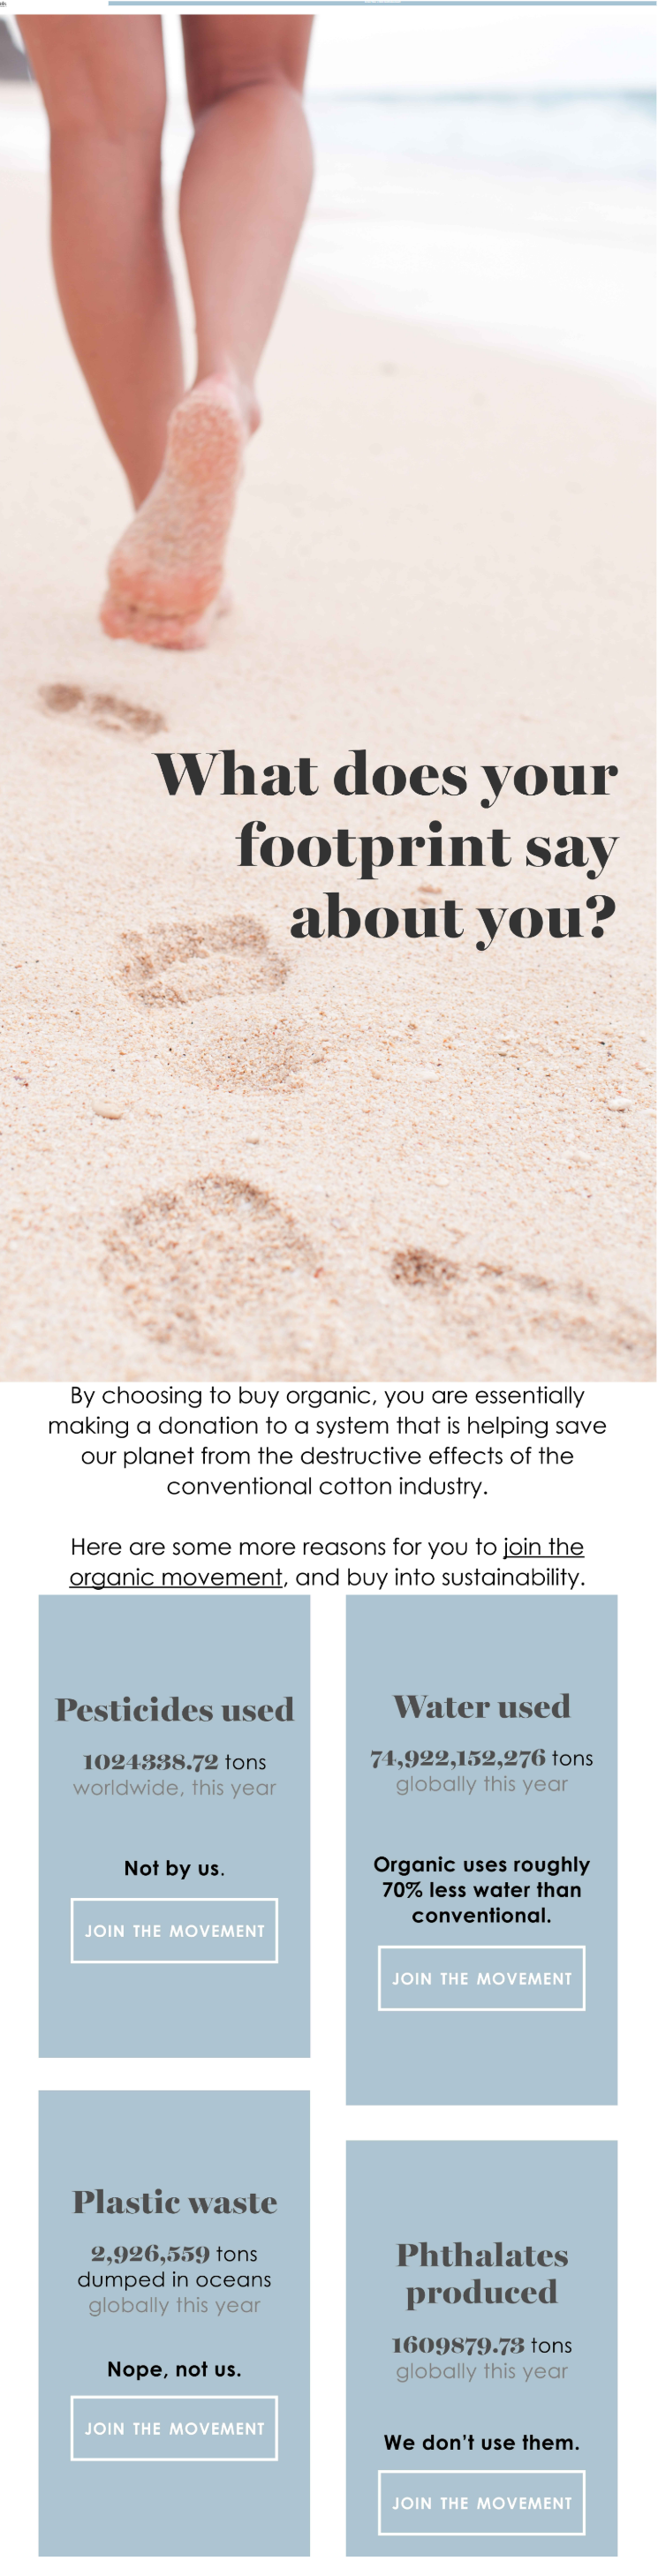 sol-organics-what-does-your-foot-print-say-about-you-celebrate-earth-day-with-25-off